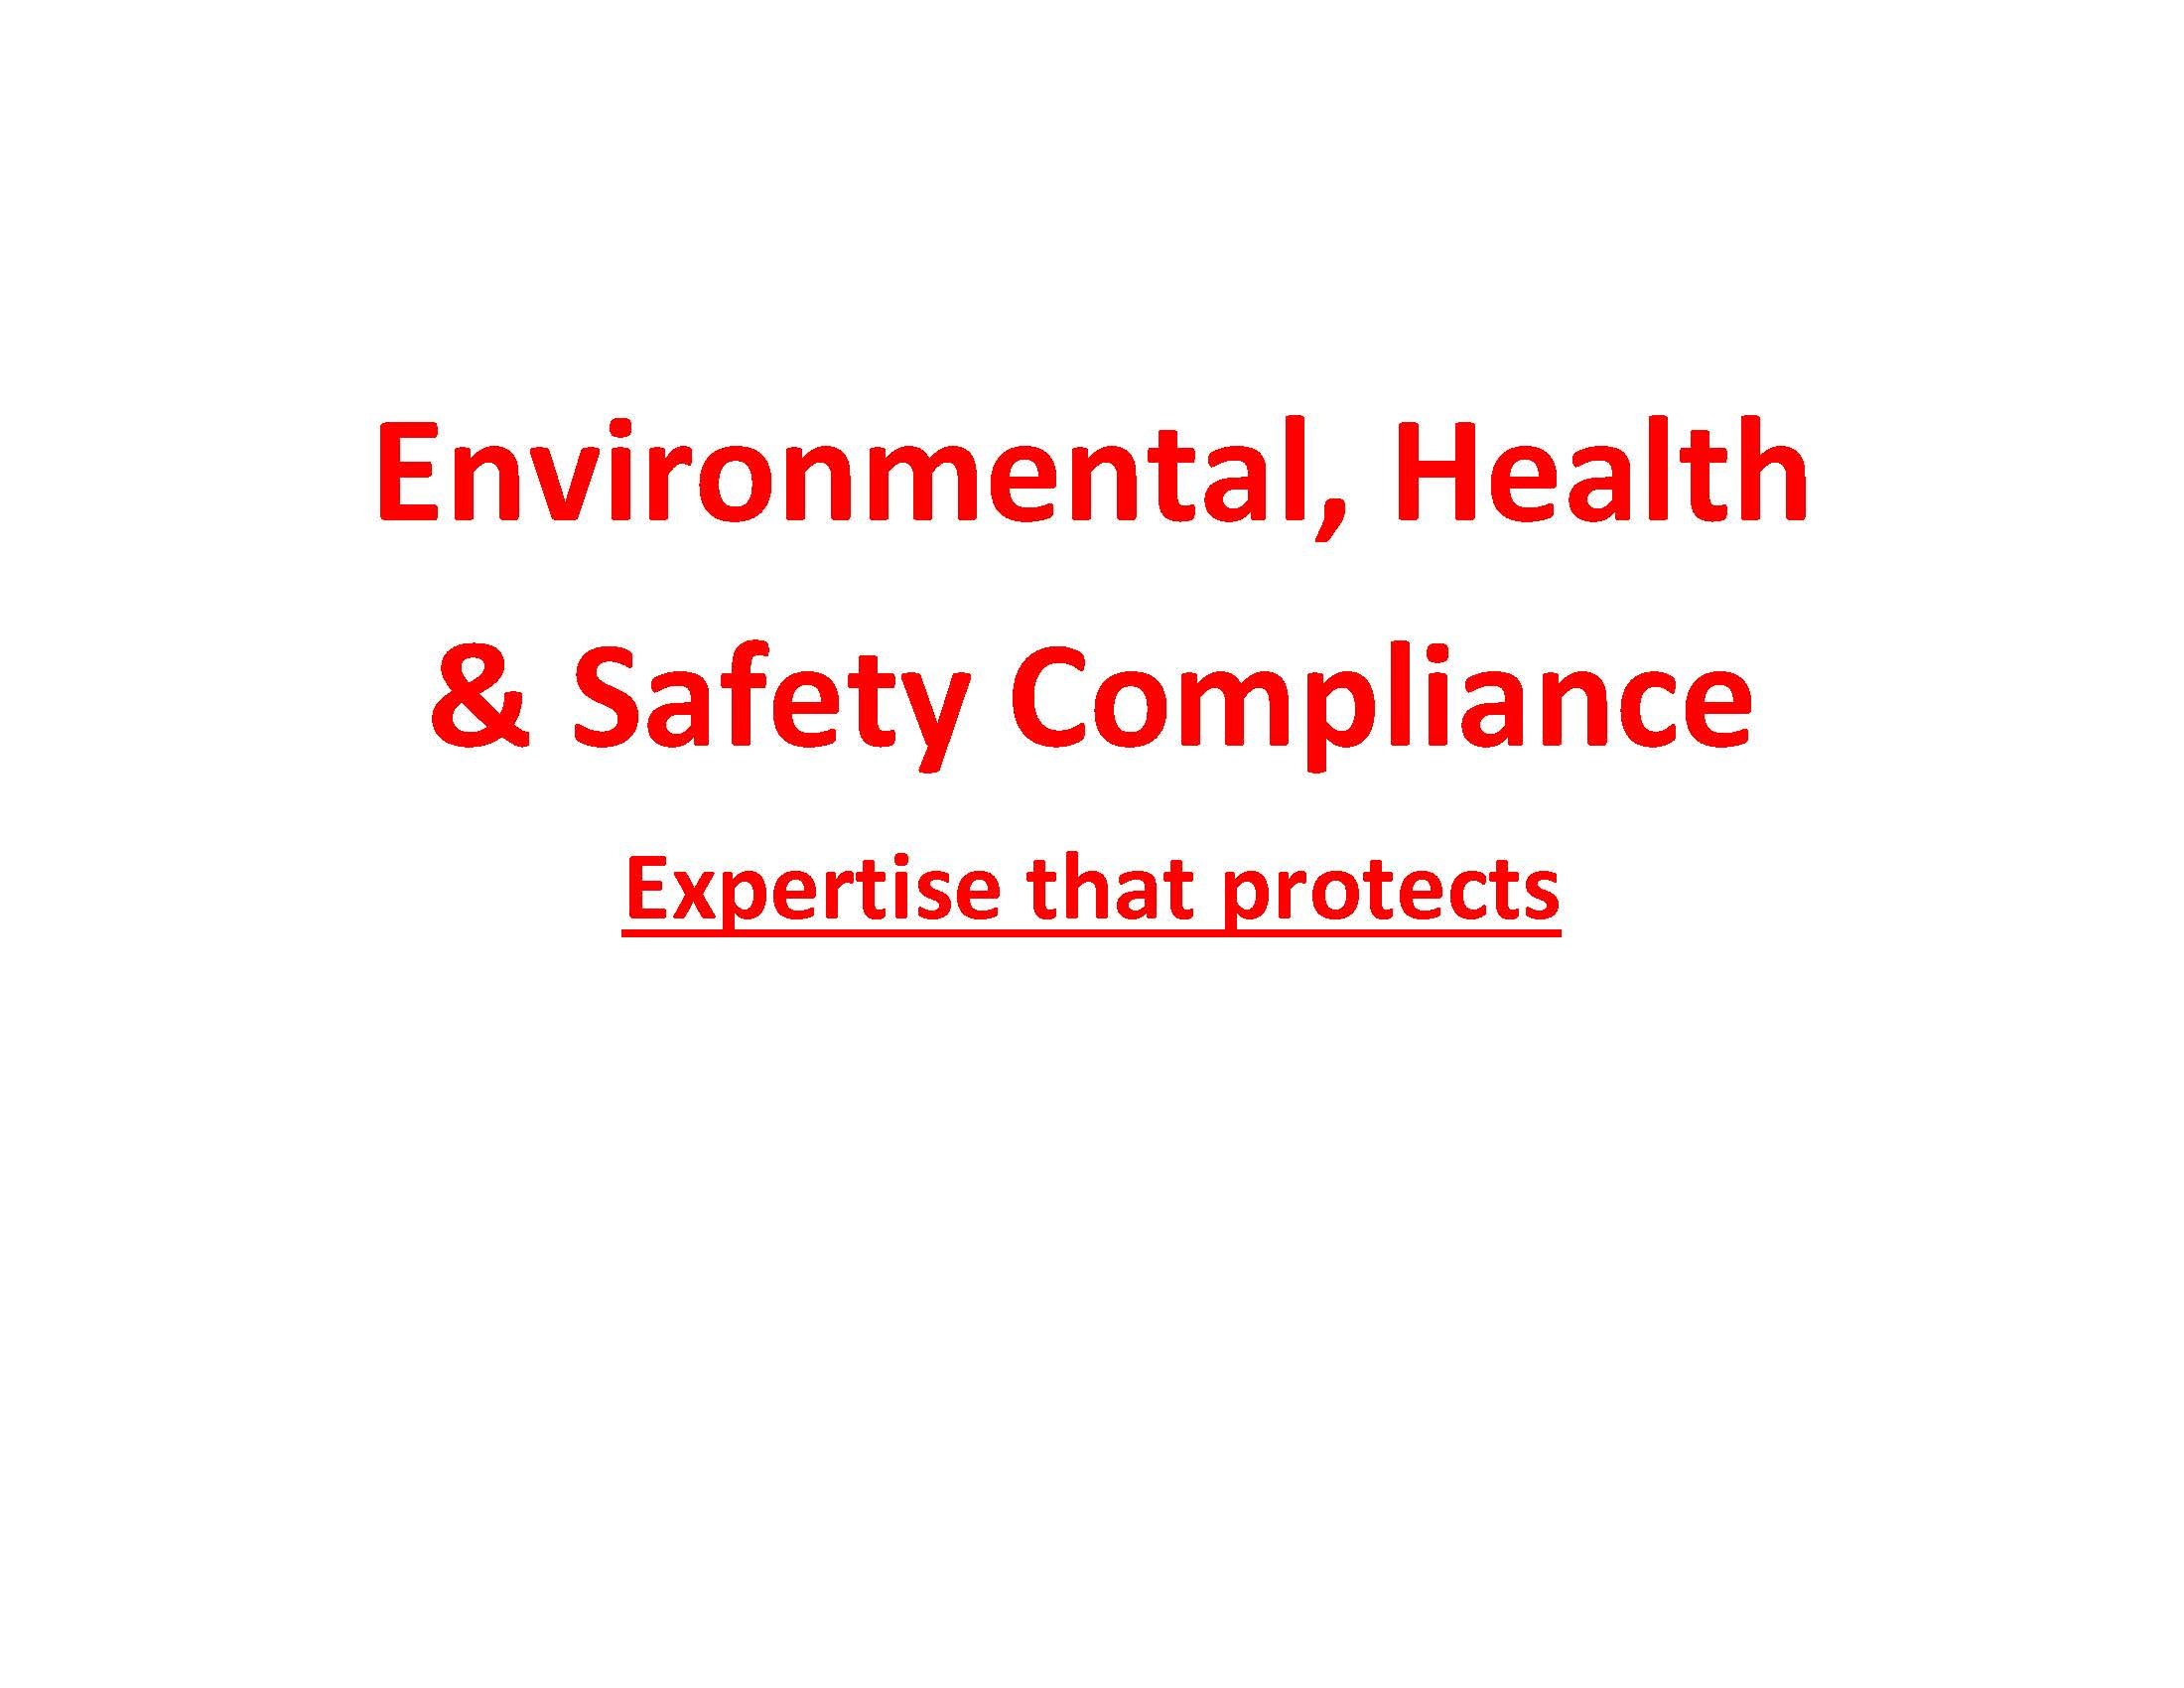 create an environmental, health or safety training presentation or policy